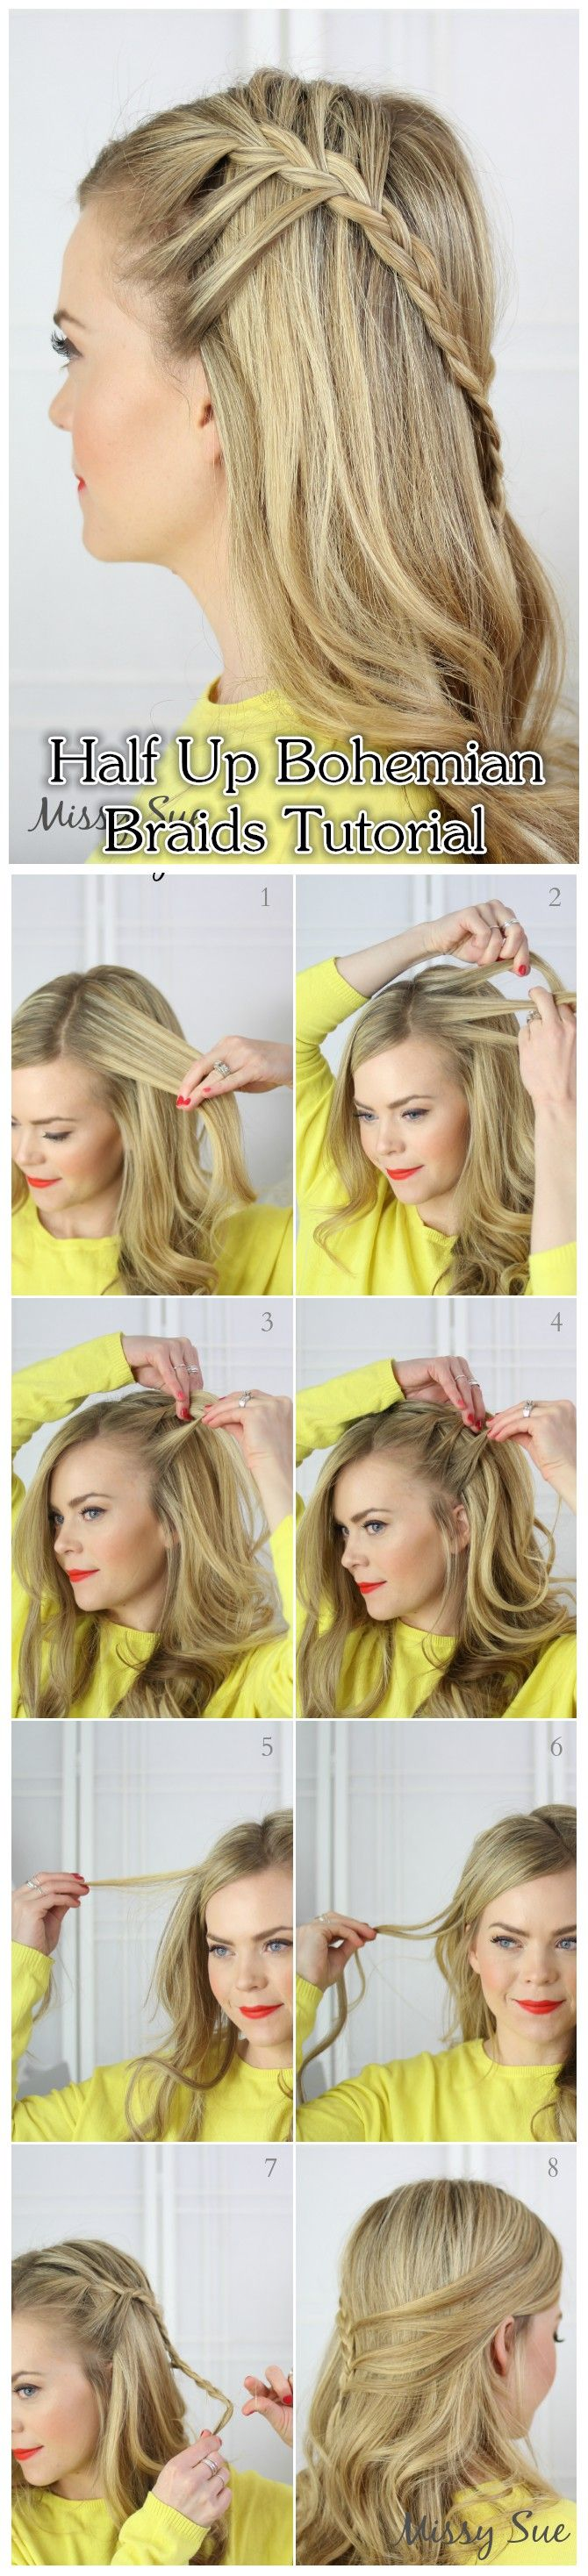 10-boho-hair-tutorial-for-the-season3